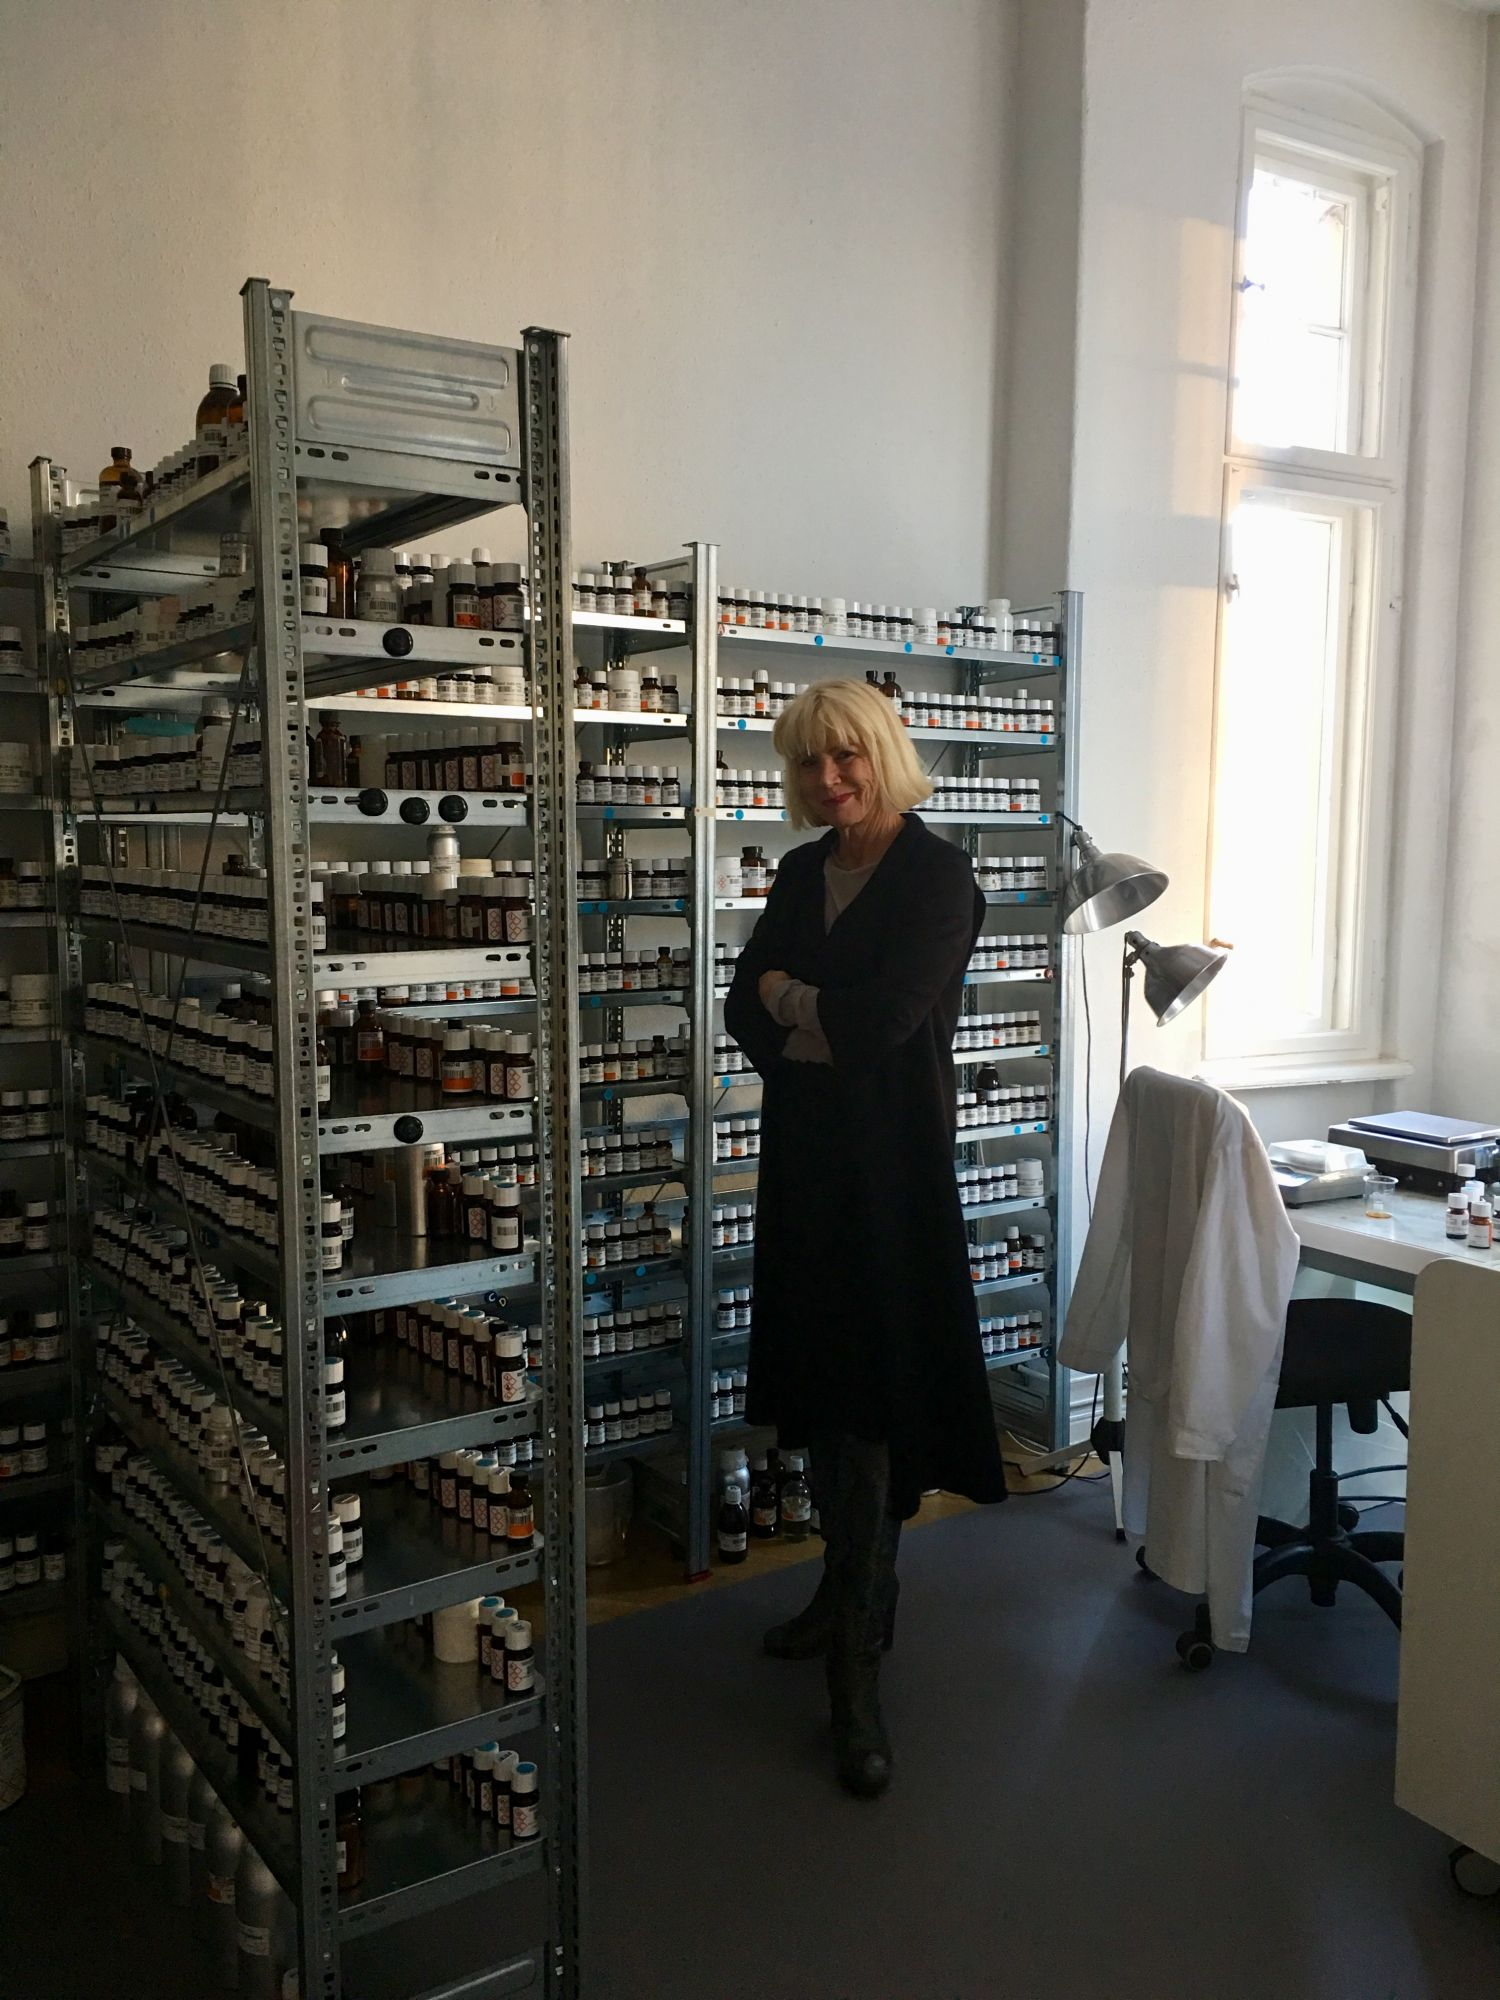 5 Minutes With… Scent Artist Sissel Tolaas